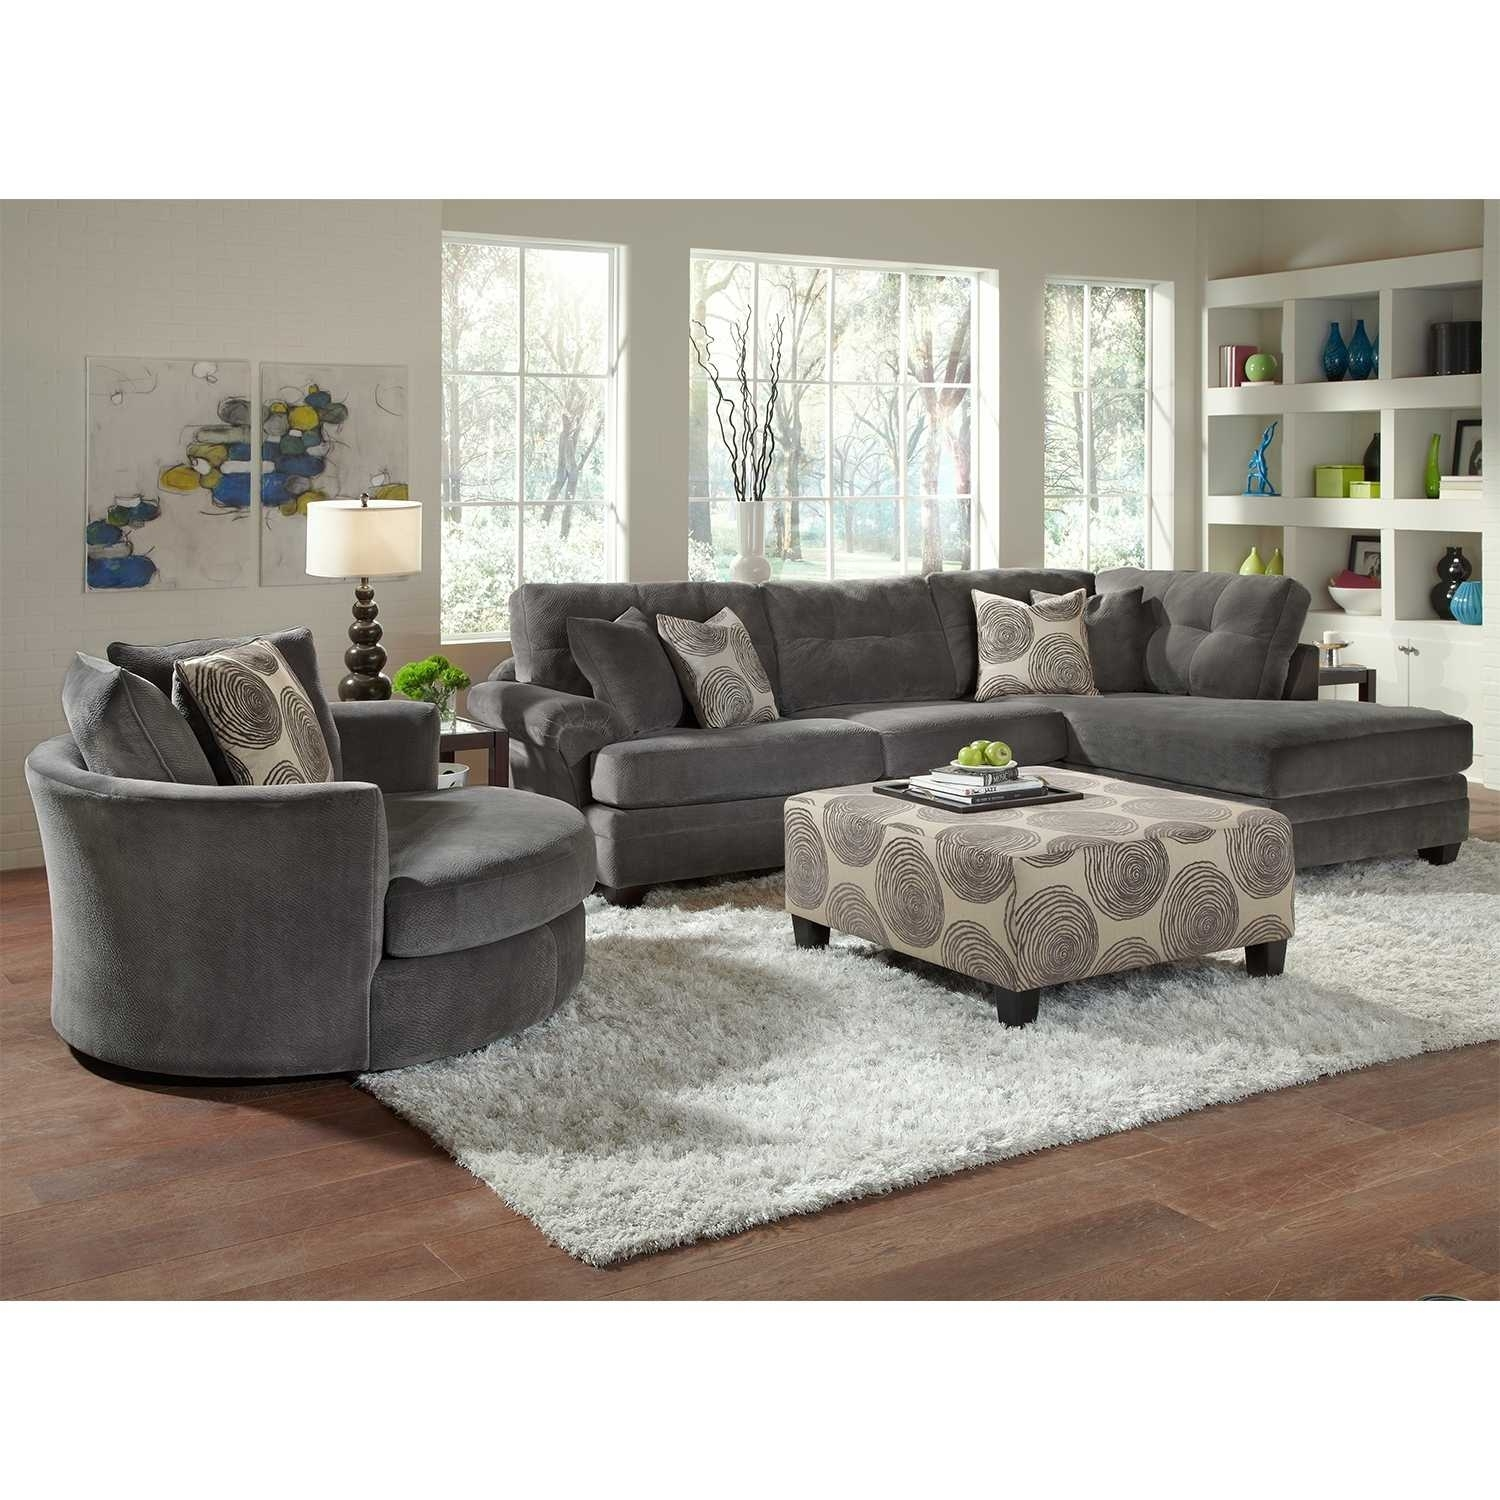 Rooms To Go Sectional :: Bbqpr with Sectional Sofas At Rooms To Go (Image 7 of 15)